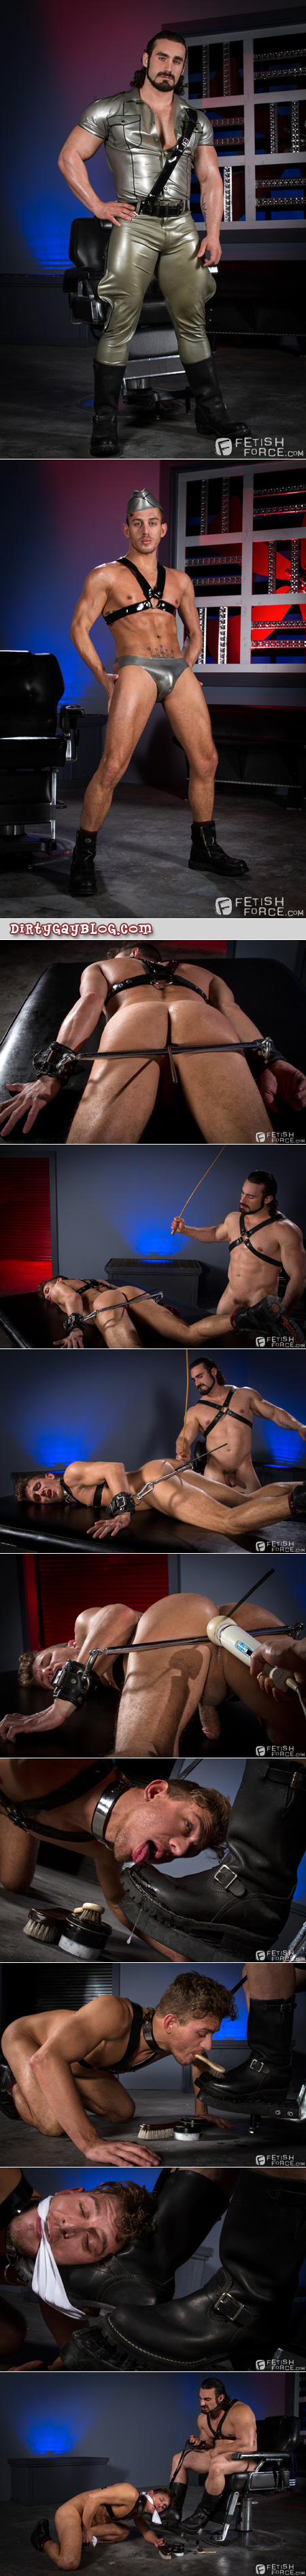 Greek muscle god dominates a young leather and rubber twink with sex toys and caning before fucking him.